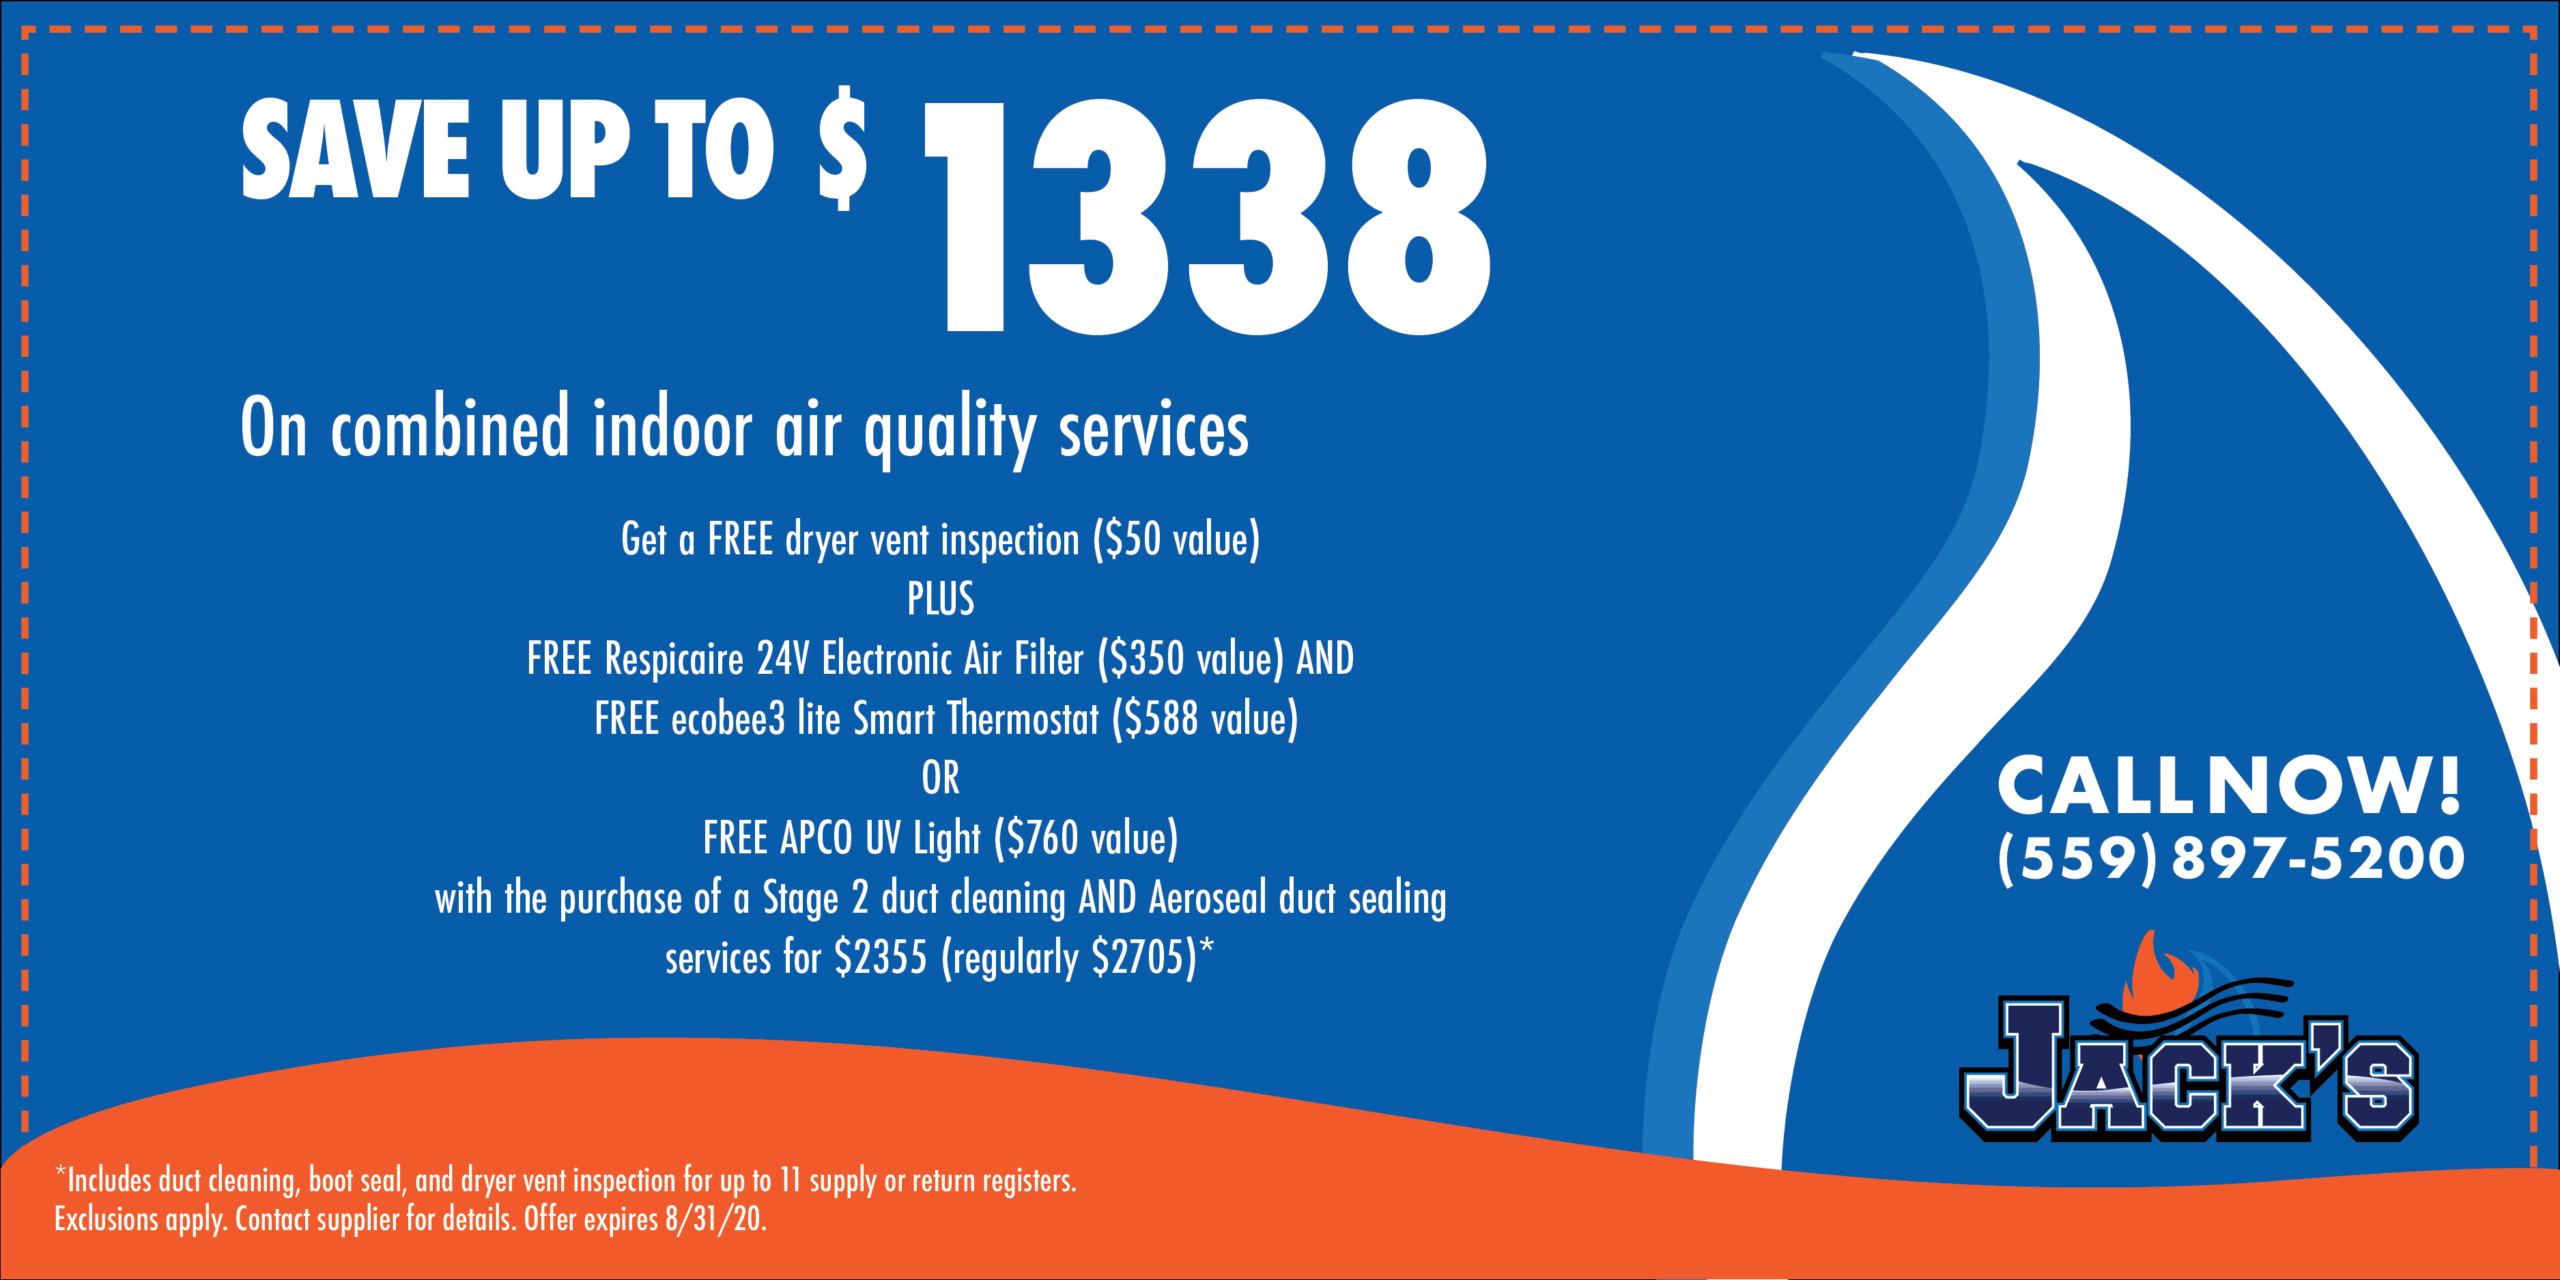 Save Up To $1338 On Indoor Air Quality Services